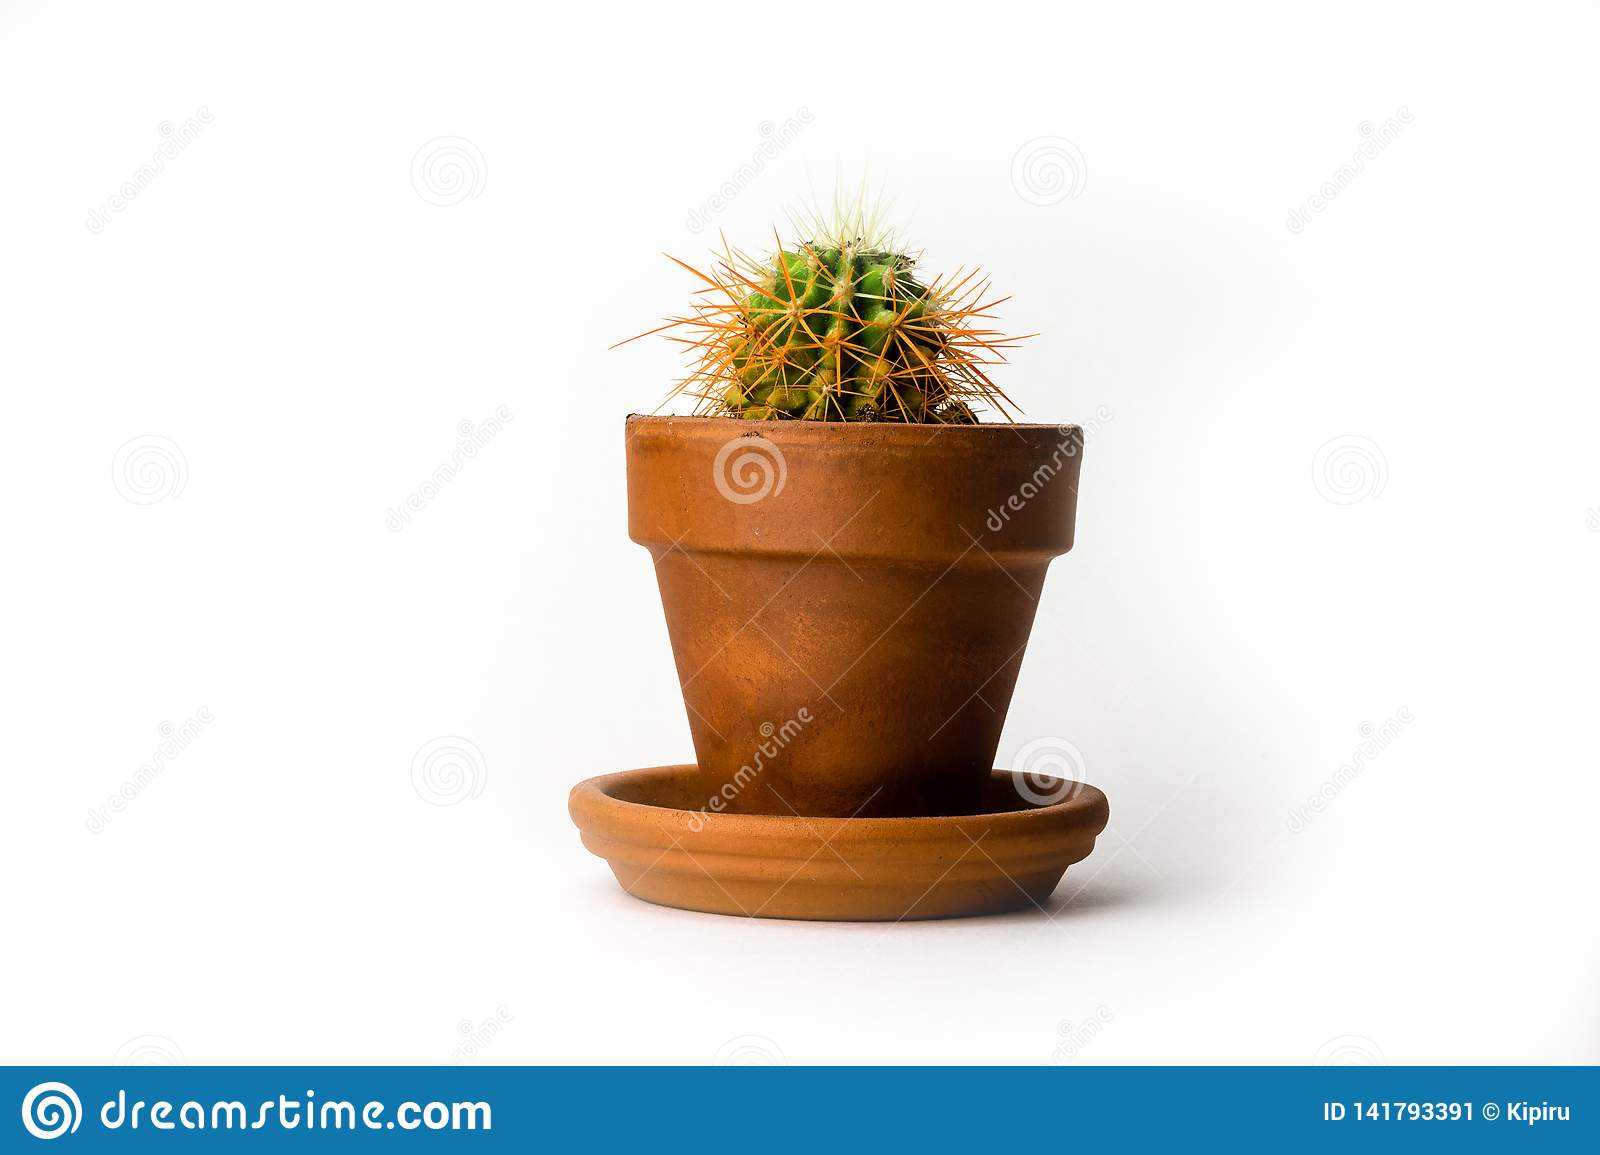 Echinocactus grusonii also known as golden barrel cactus in pot isolated on white background